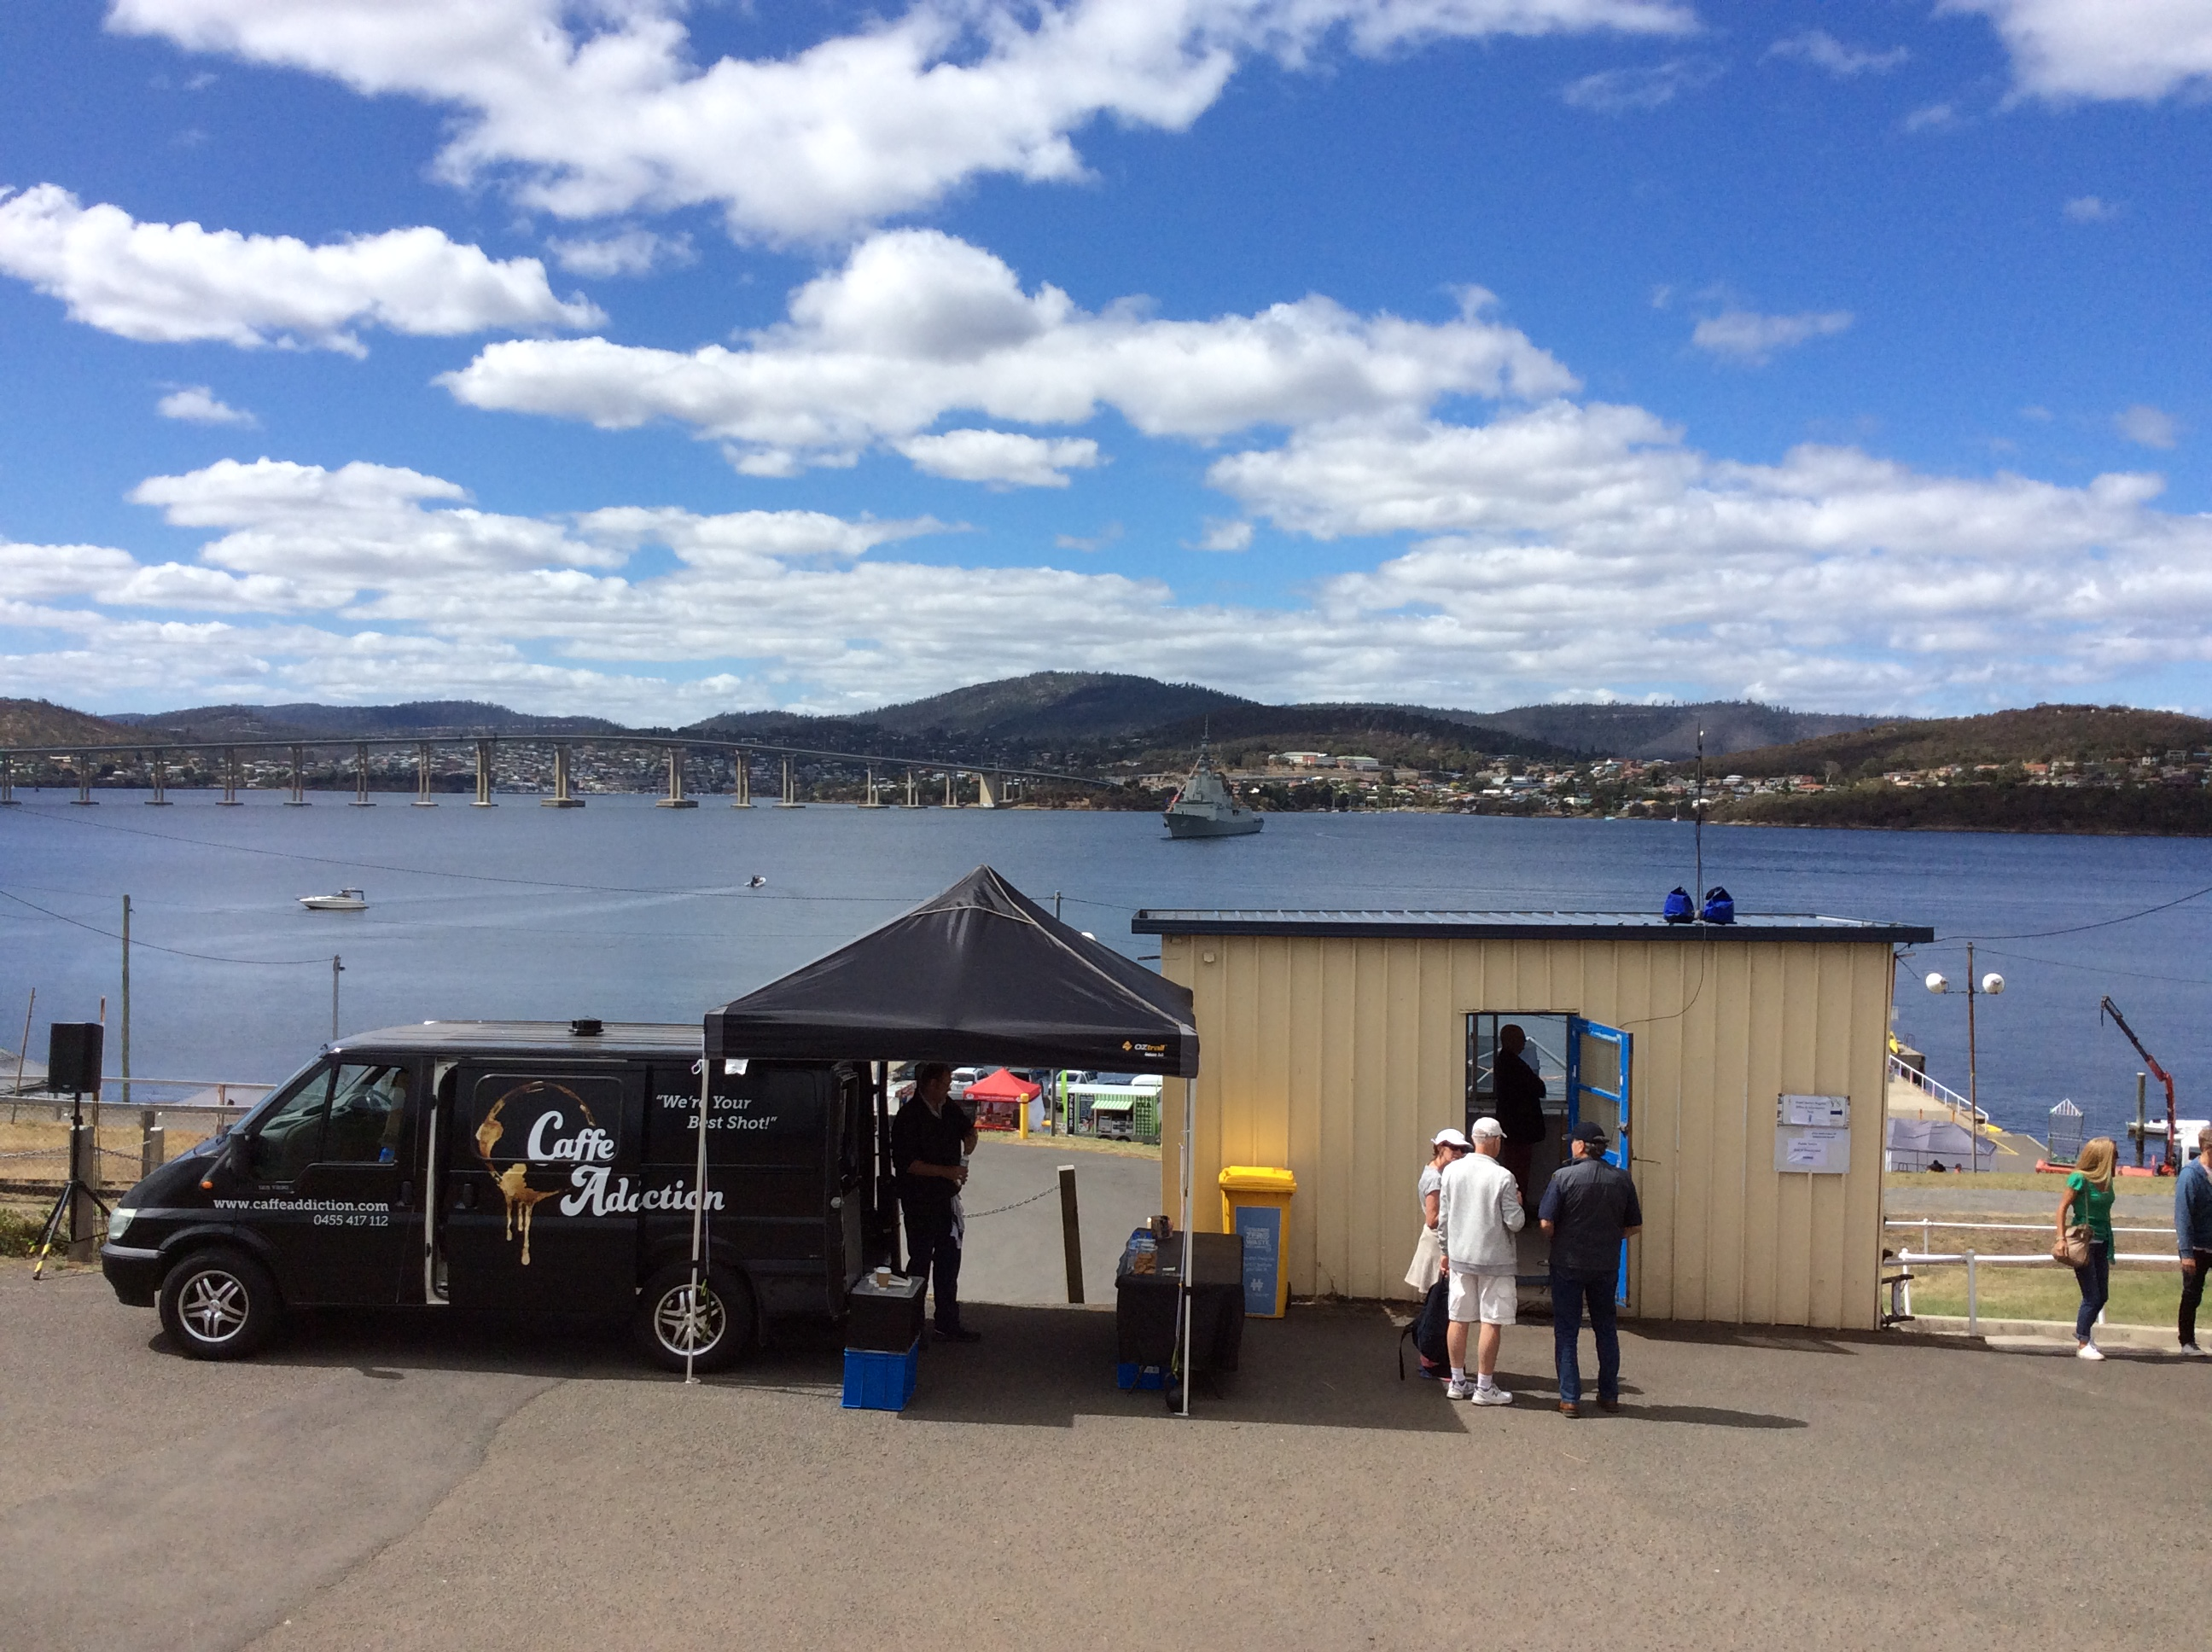 2018 Royal Hobart Regatta